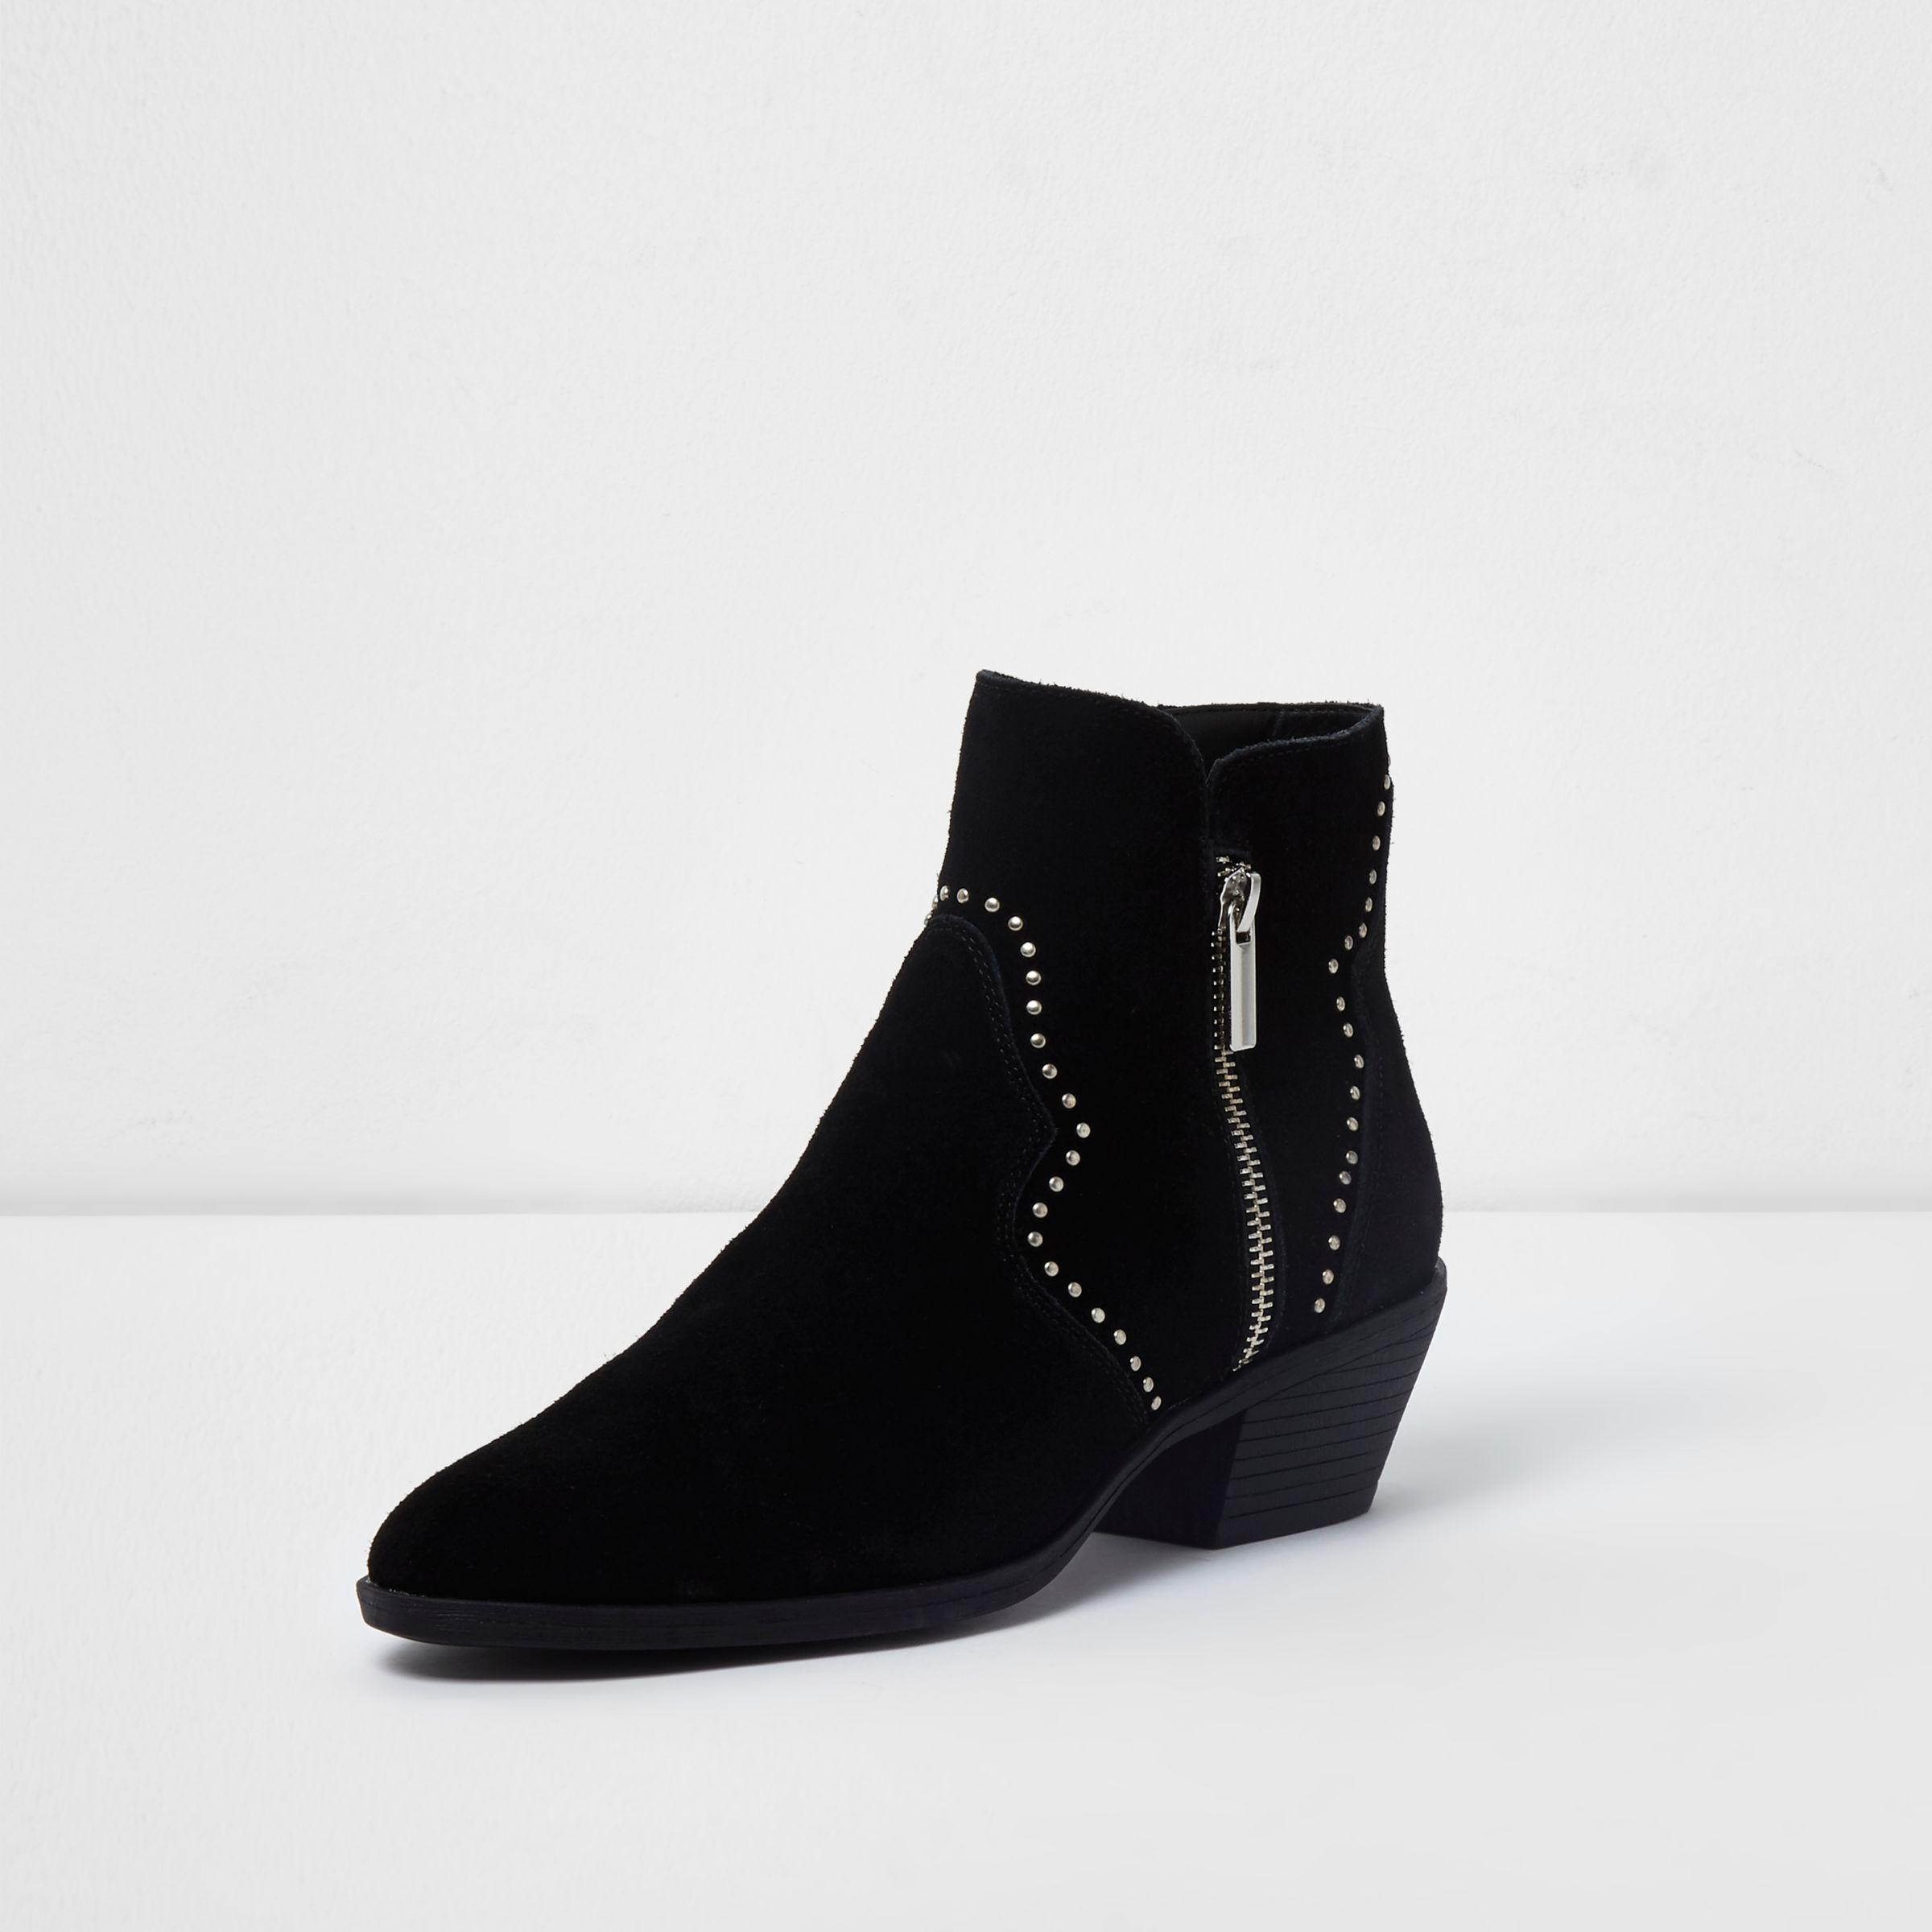 classic style outlet online limited guantity Black Studded Western Suede Ankle Boots